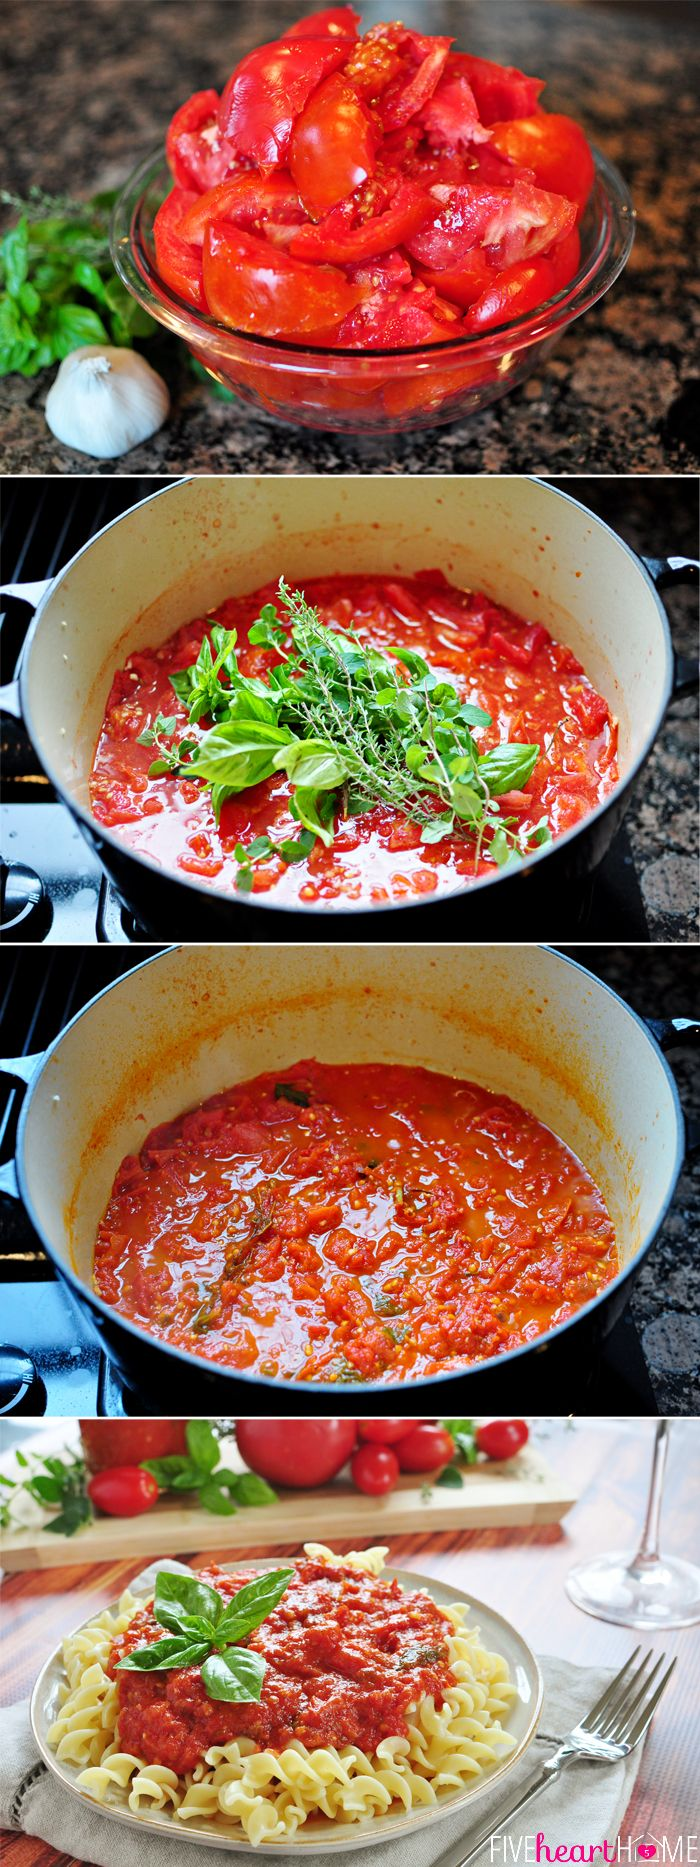 30-Minute Homemade Marinara ~ quick, flavorful sauce made with ripe tomatoes, fresh herbs, garlic and a touch of balsamic vinegar | FiveHear...